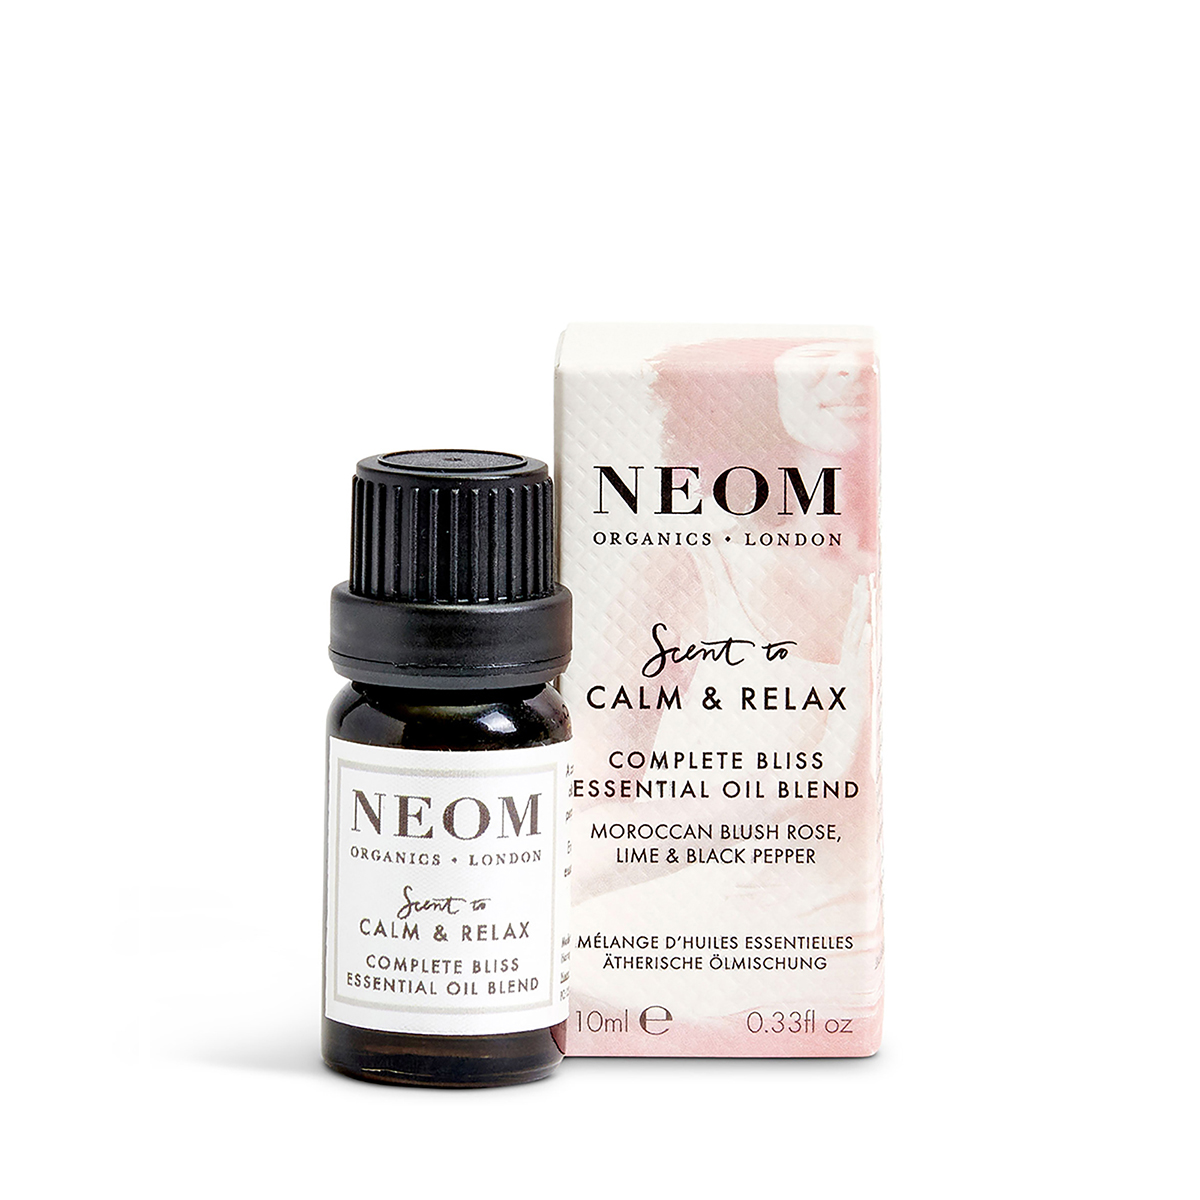 Complete Bliss Essential Oil Blend Neom Organics, home fragrance from Beautiful Brands